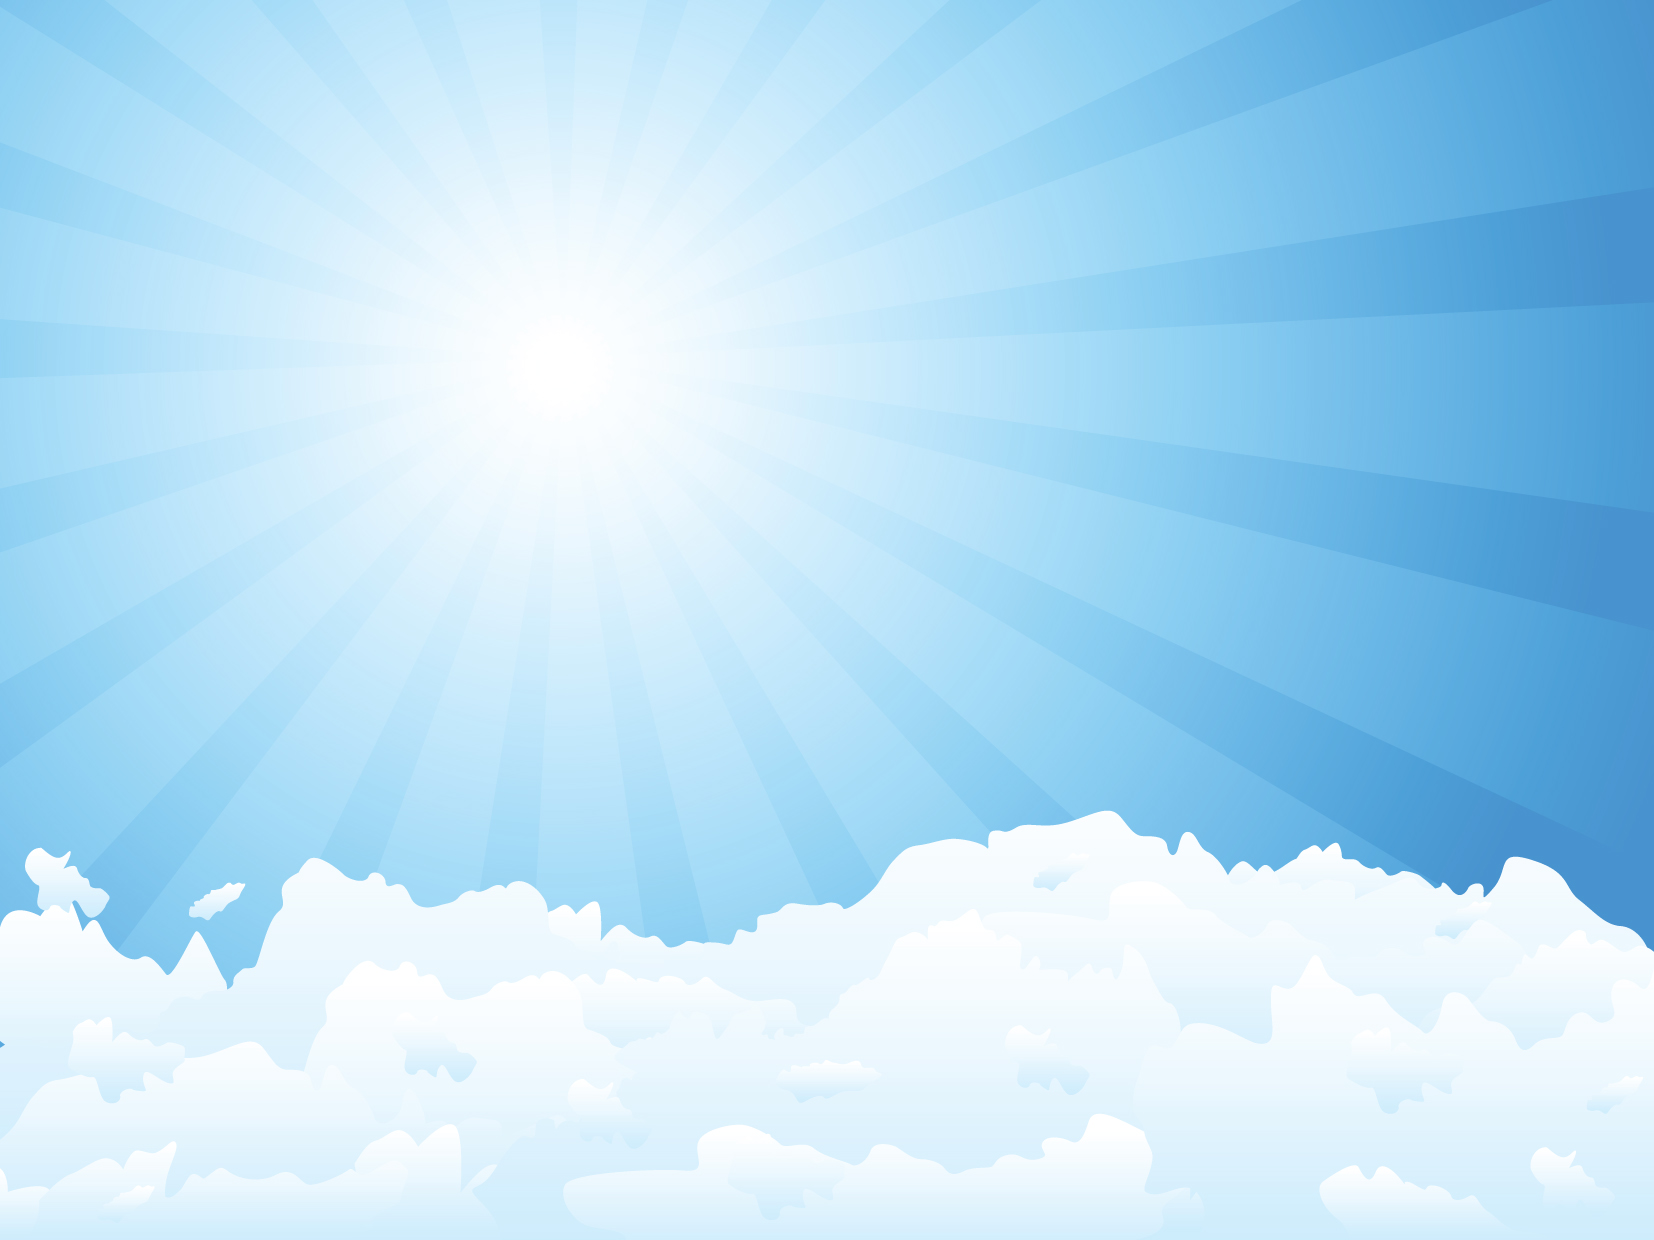 Heaven background clipart transparent library sky, texture, clouds, download photos, background, sky cloud ... transparent library